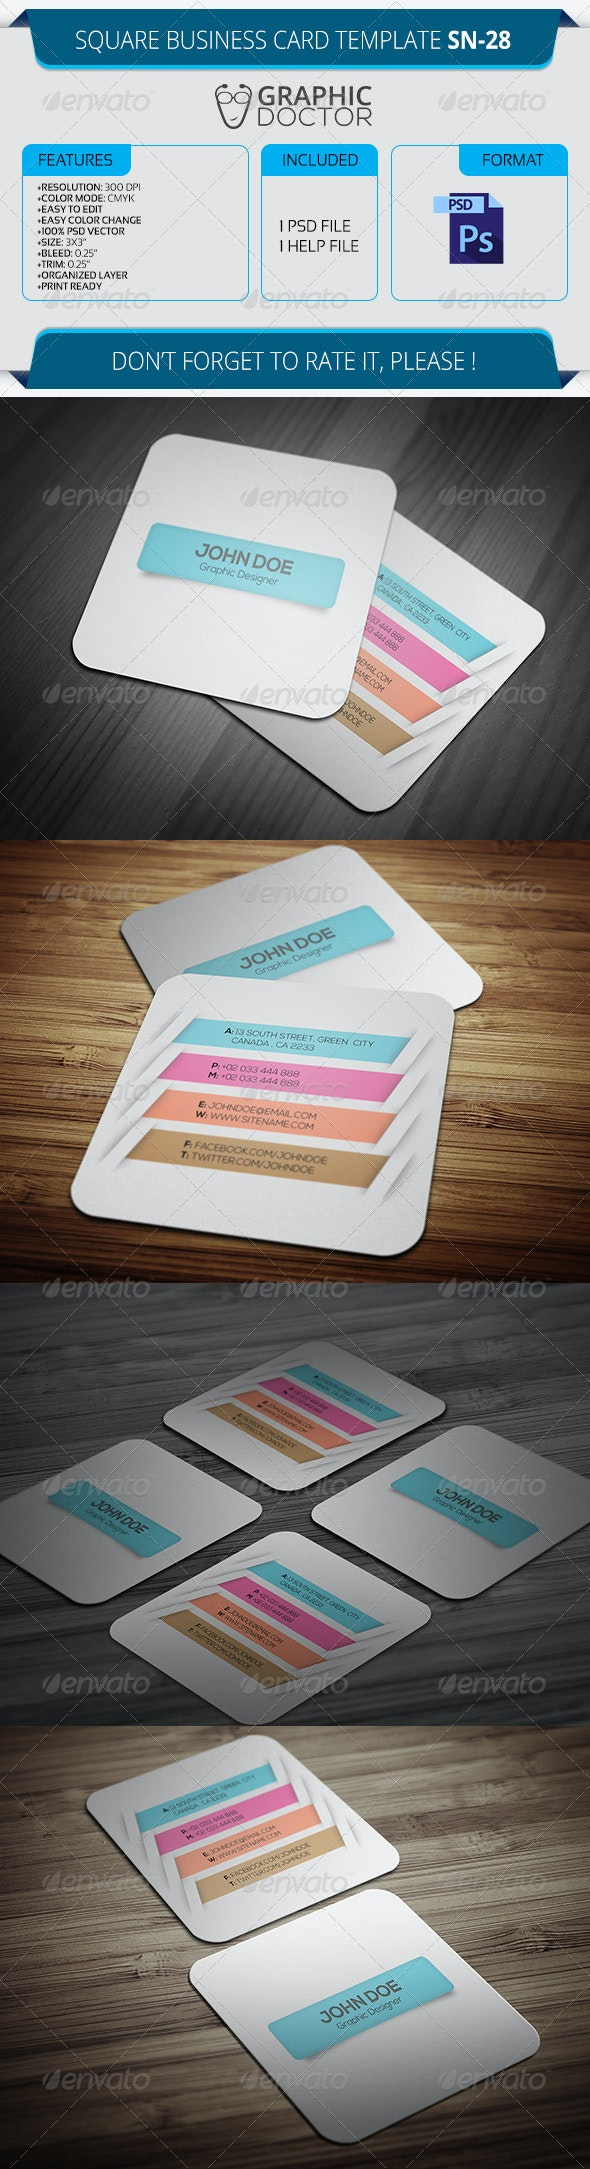 Square Business Card Template SN-28 - Creative Business Cards